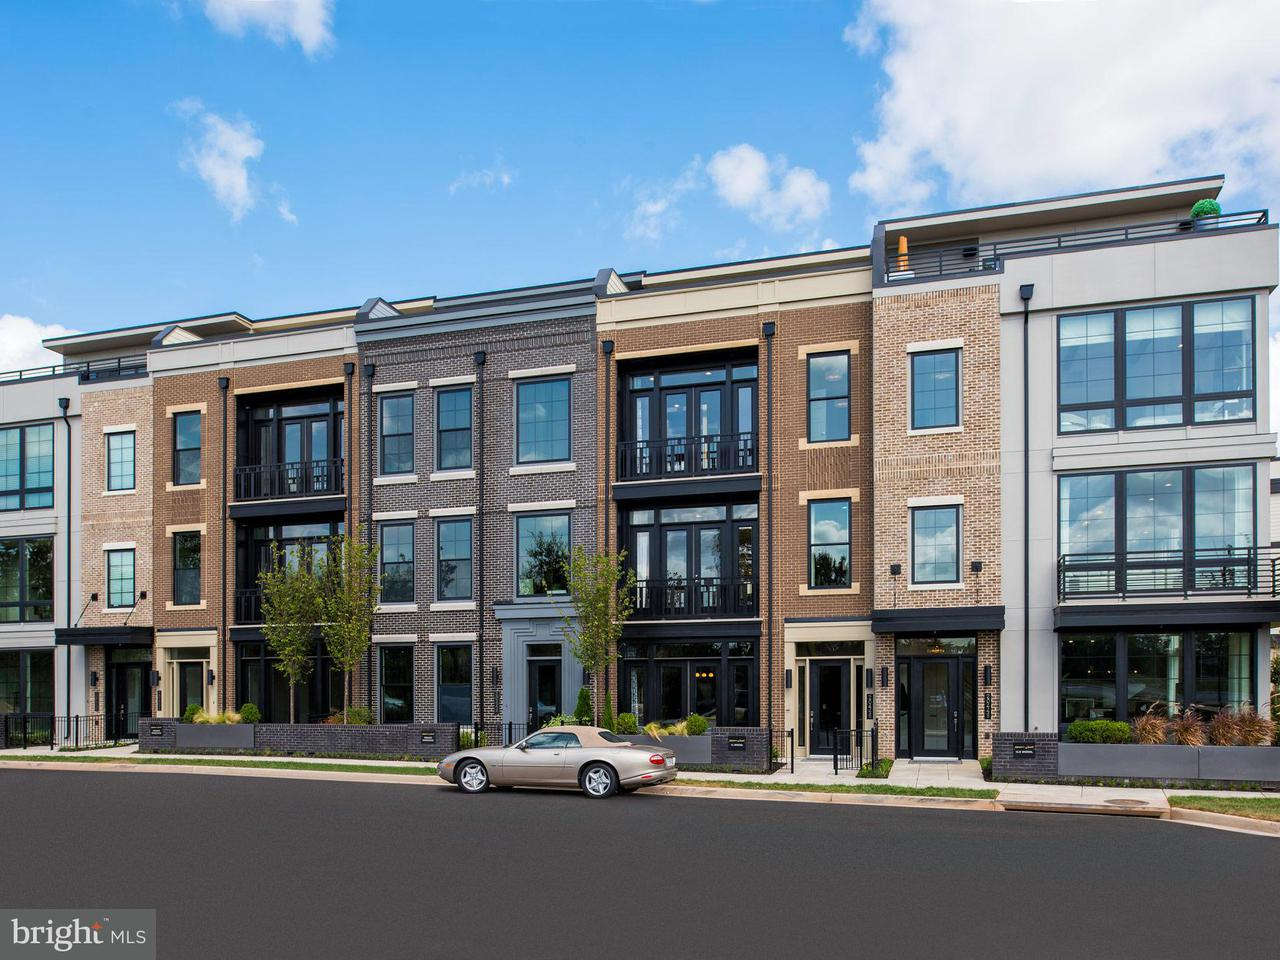 Townhouse for Sale at Northpark Drive Northpark Drive Ashburn, Virginia 20147 United States